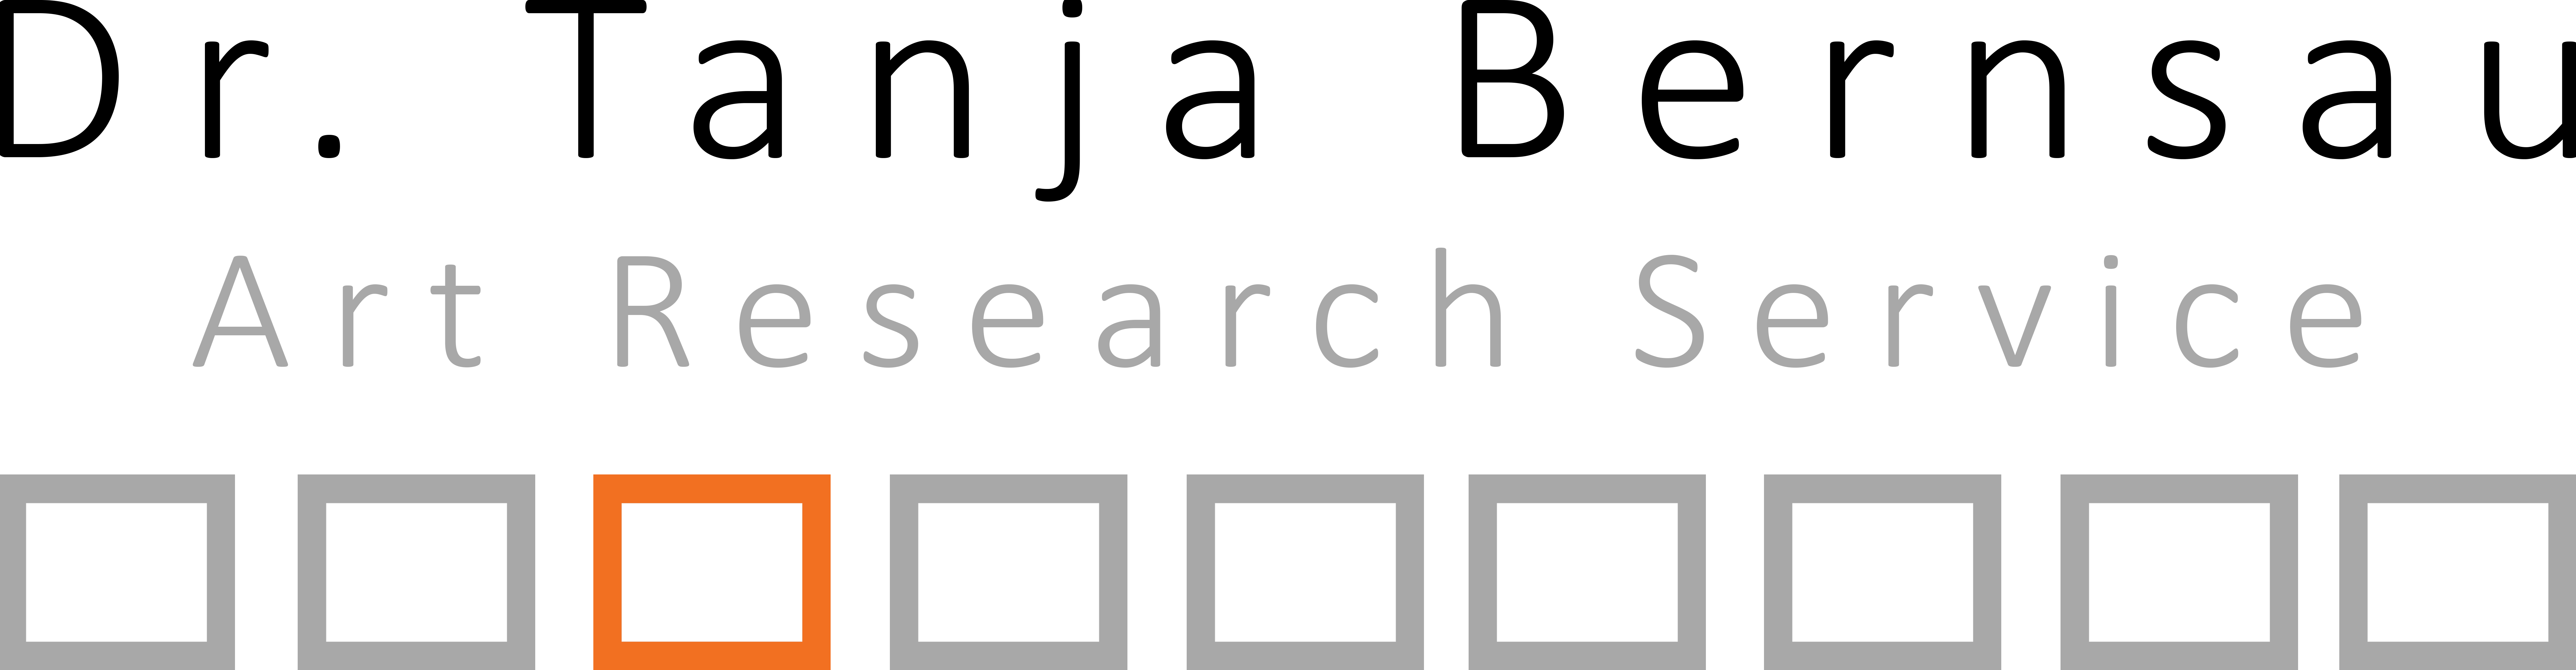 Art Research Service